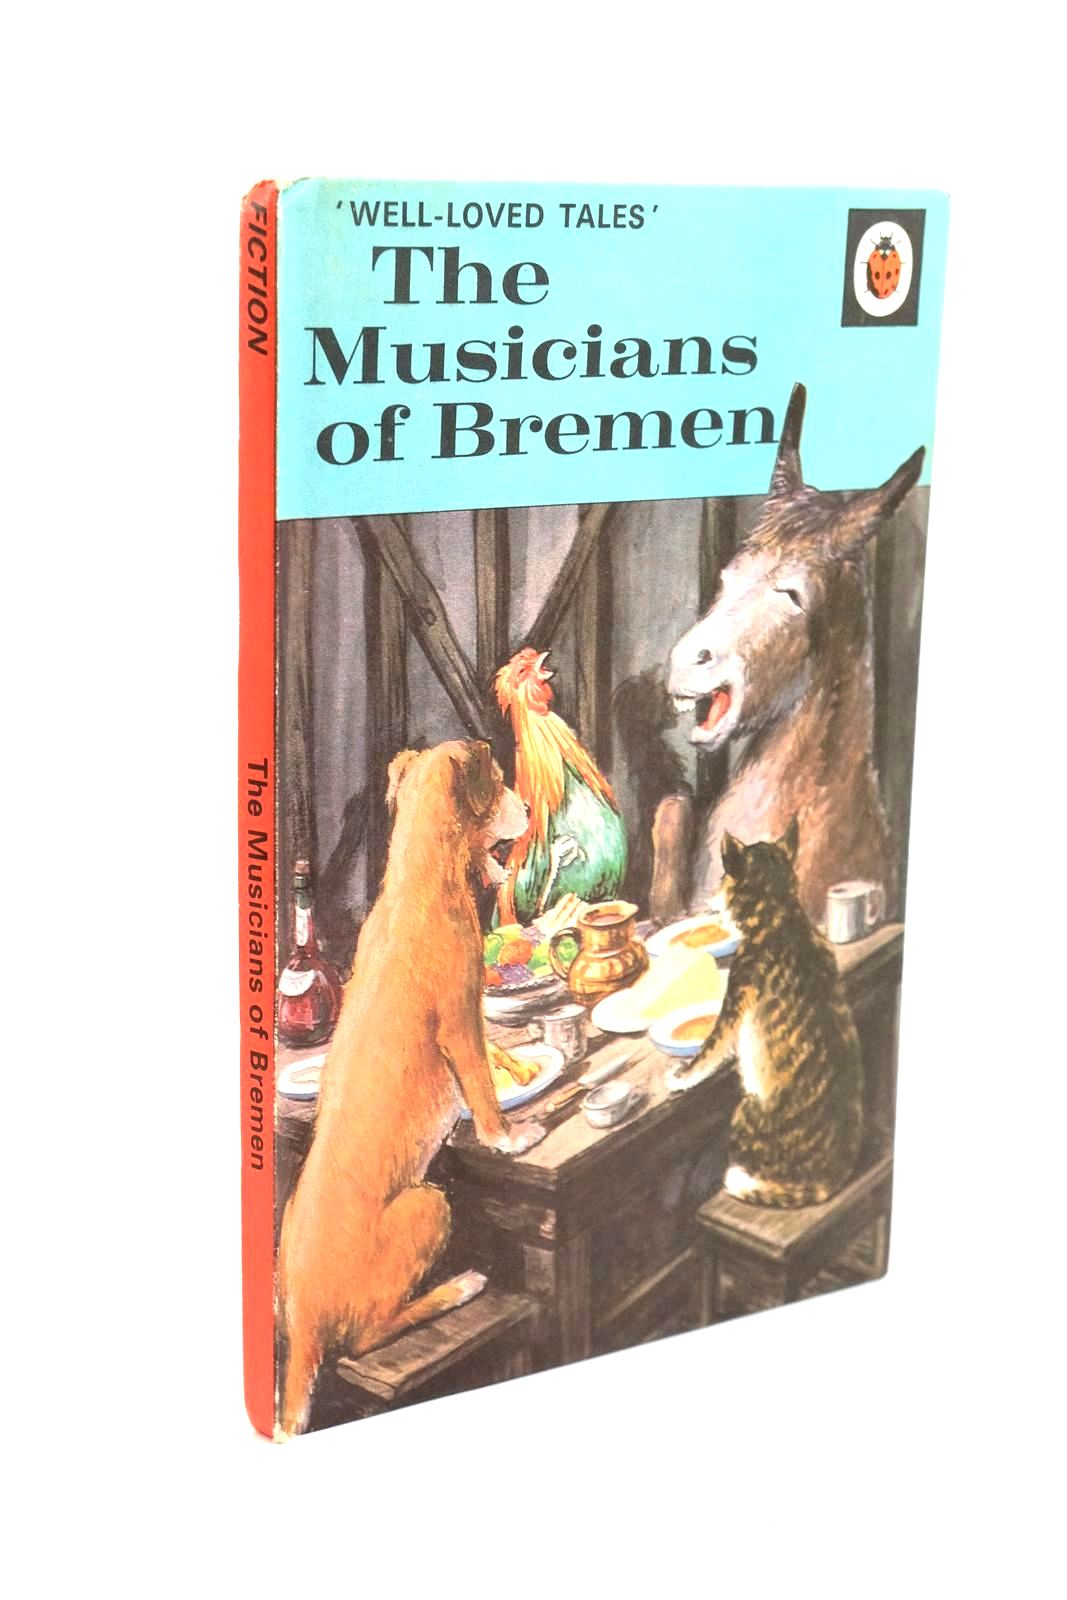 Photo of THE MUSICIANS OF BREMEN written by Southgate, Vera illustrated by Lumley, Robert Berry, John published by Ladybird Books (STOCK CODE: 1321322)  for sale by Stella & Rose's Books